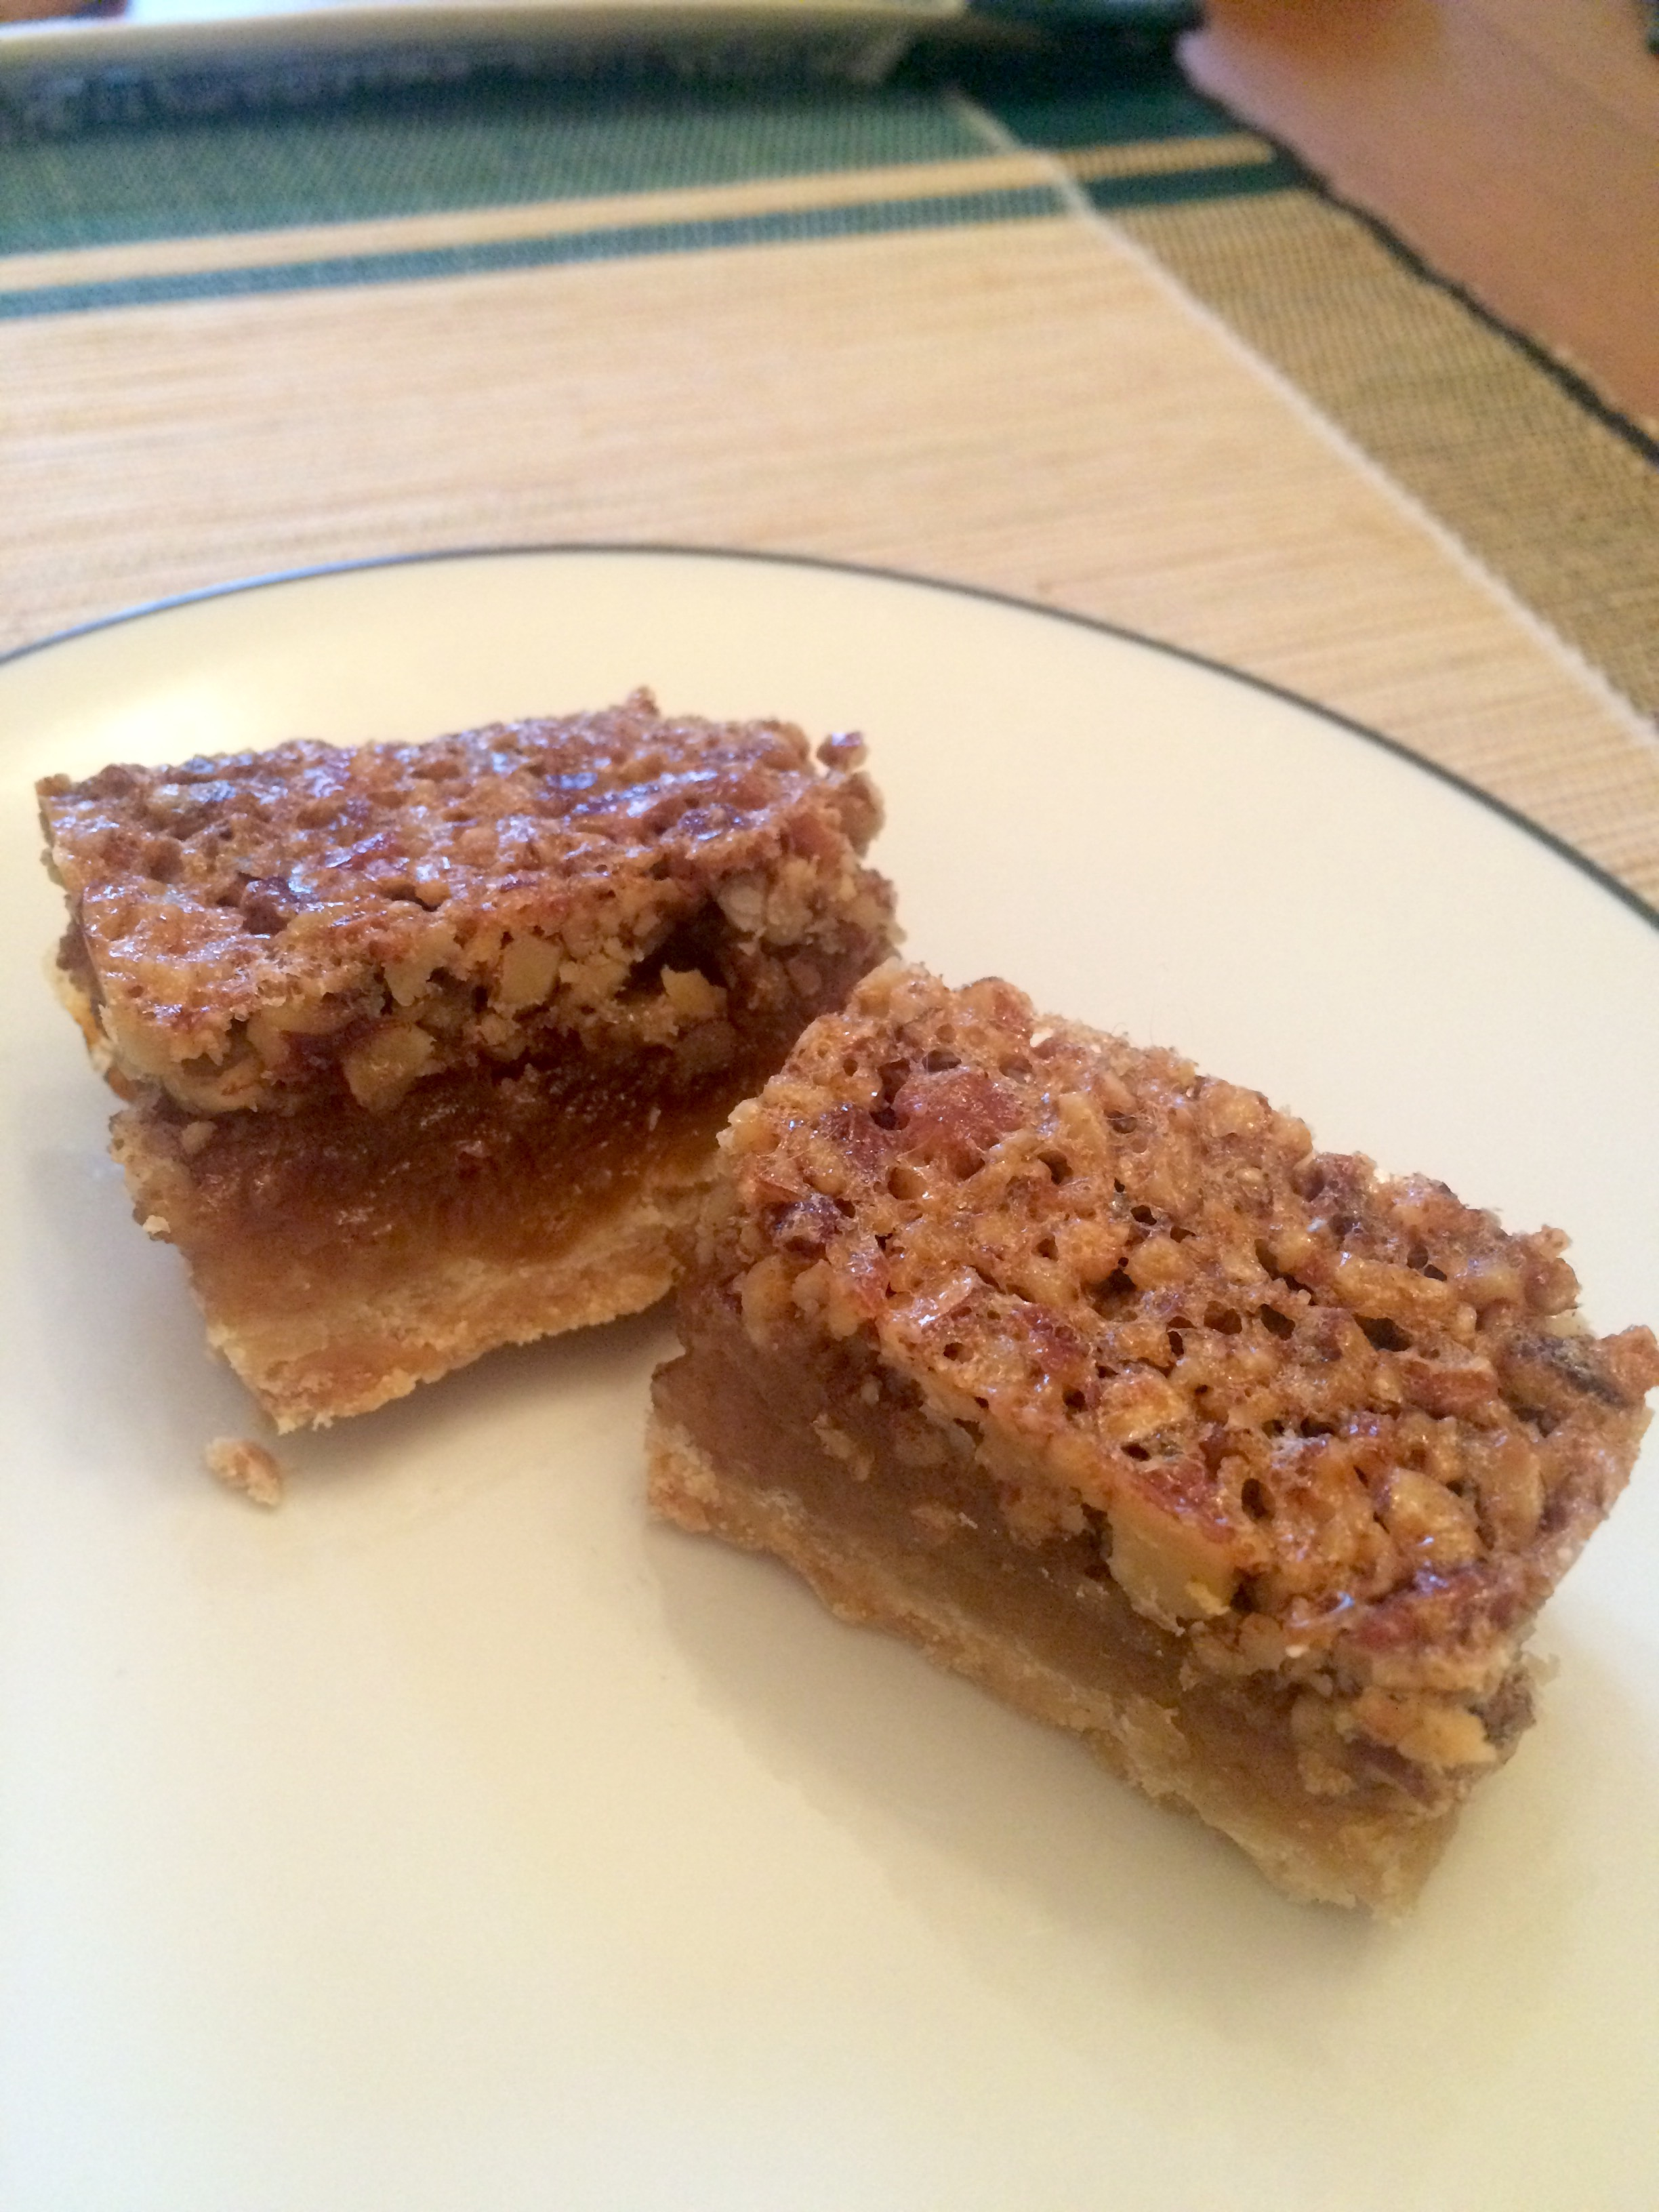 My mom's famous Pecan Pie Bars, perfect for any holiday gathering